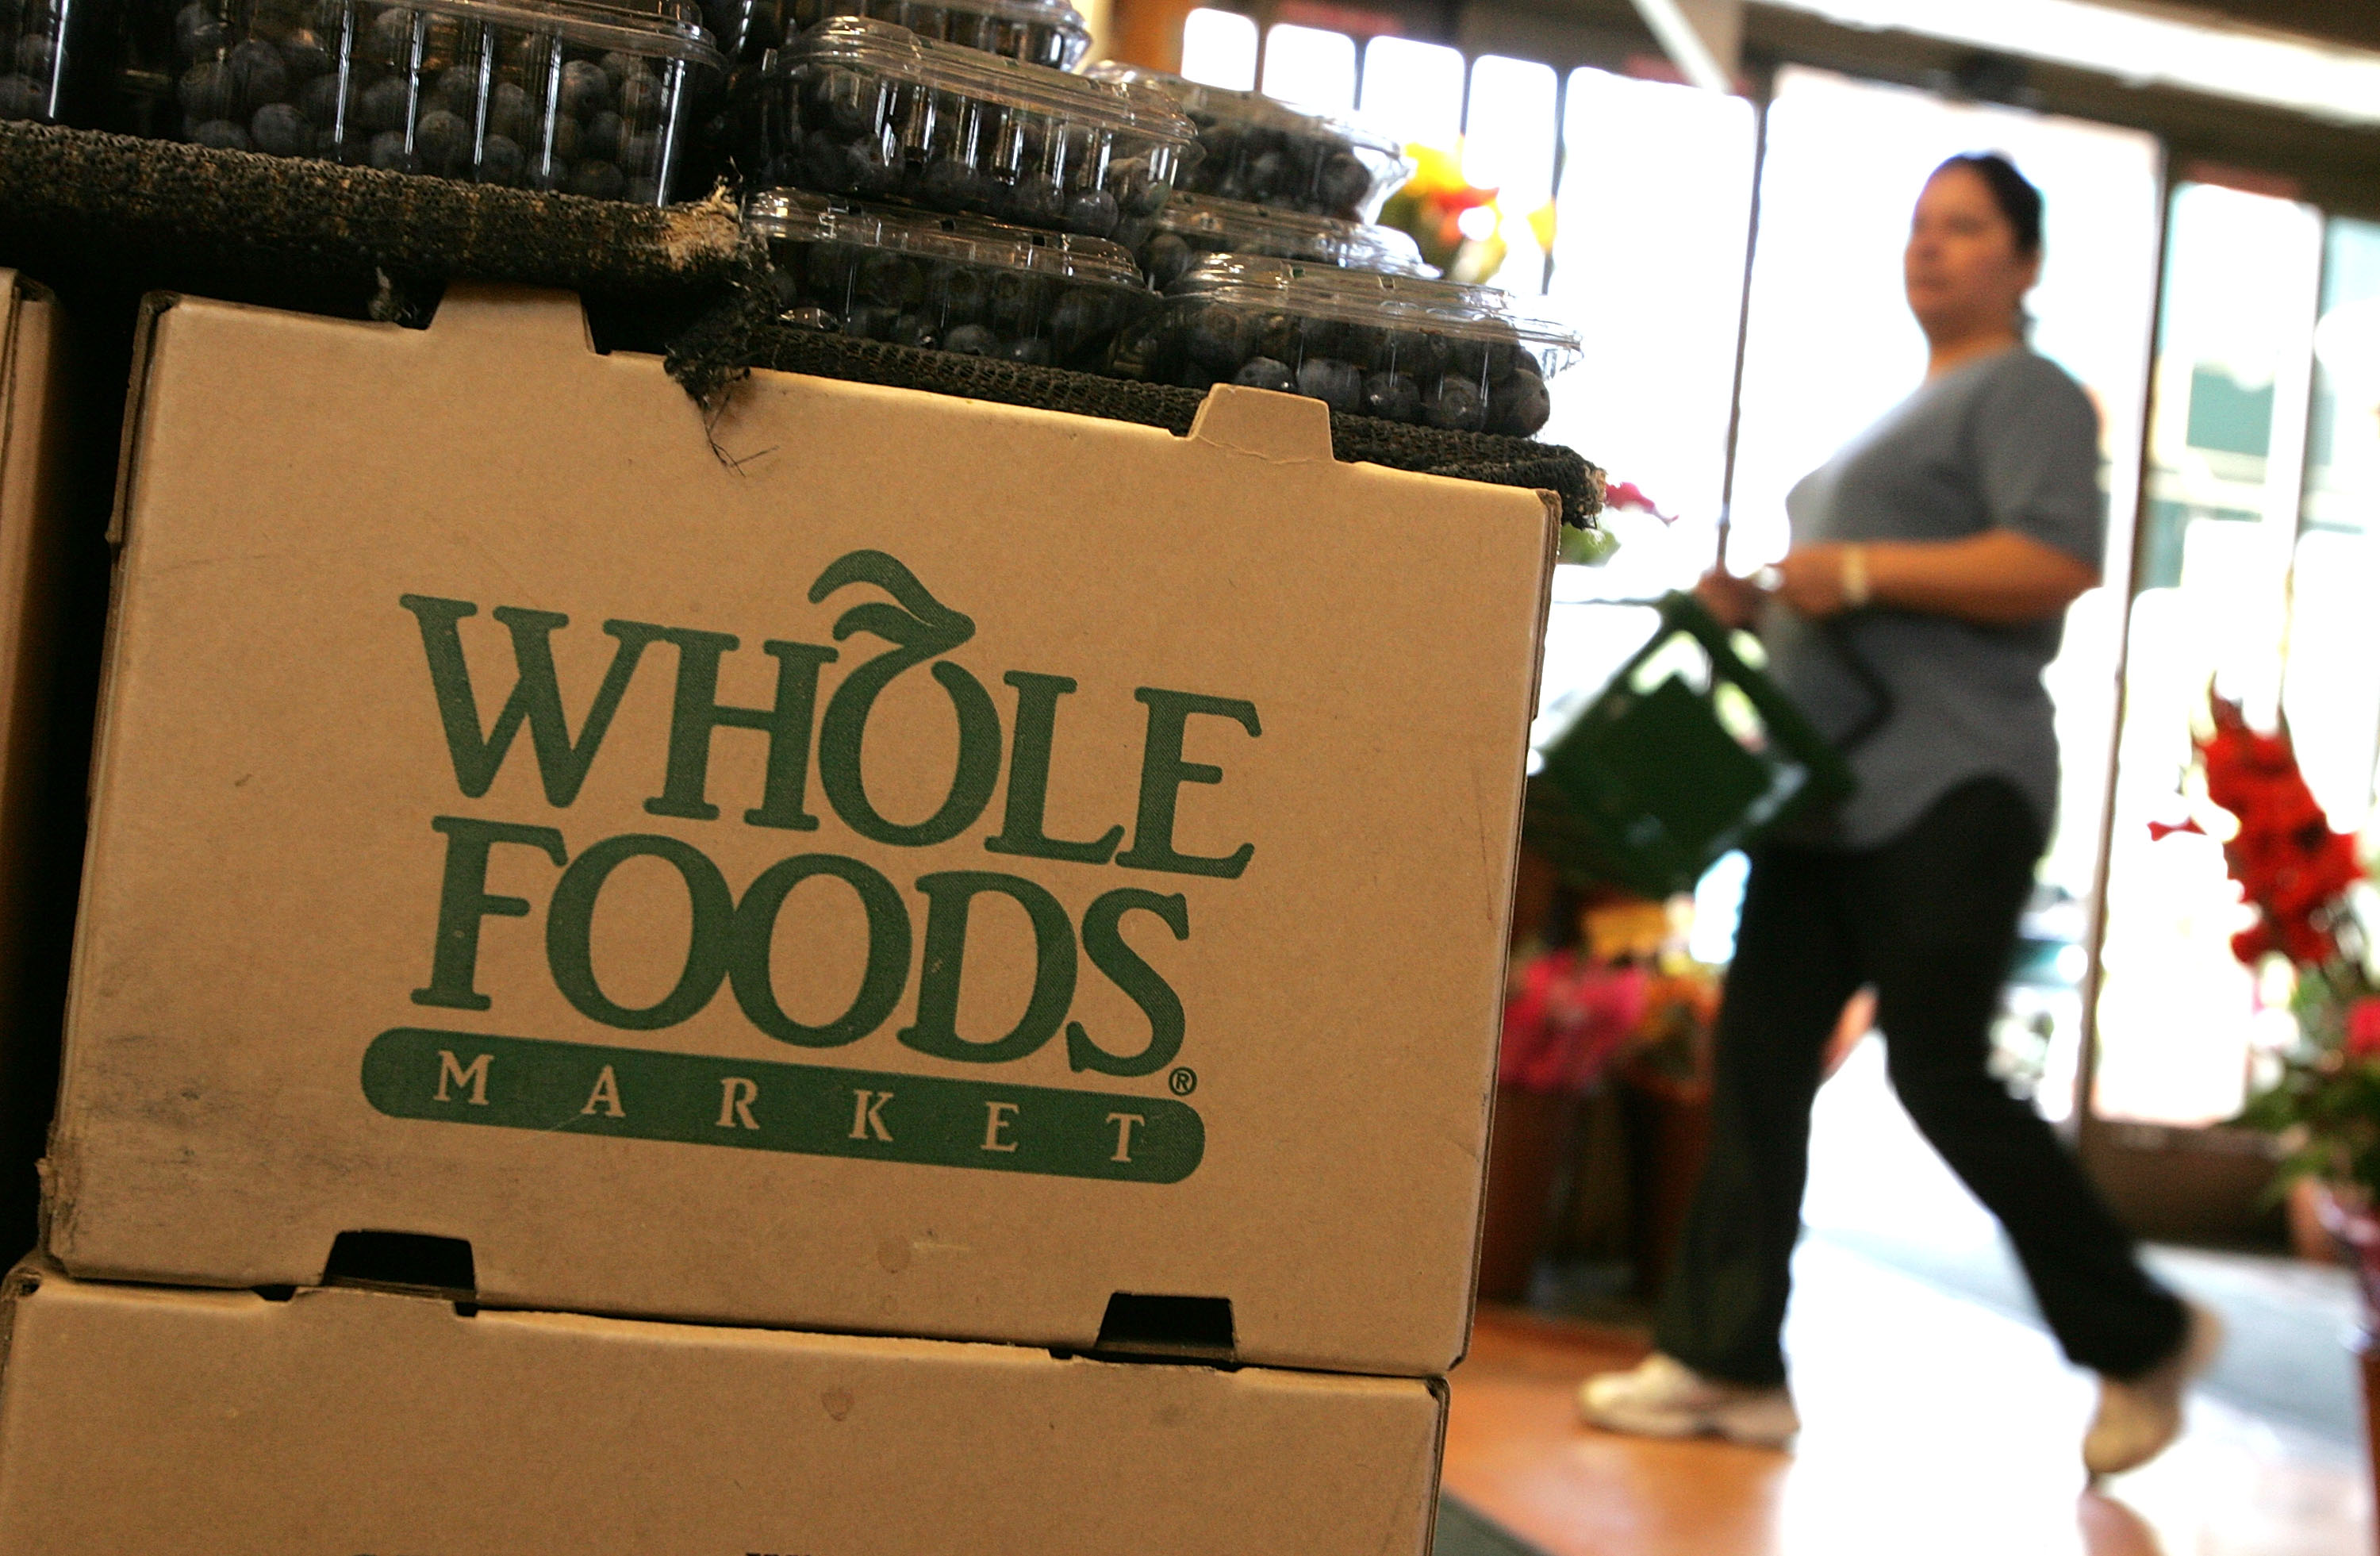 The Whole Foods logo adorns a cardboard box at a Whole Foods Market February 22, 2007 in San Francisco, California.